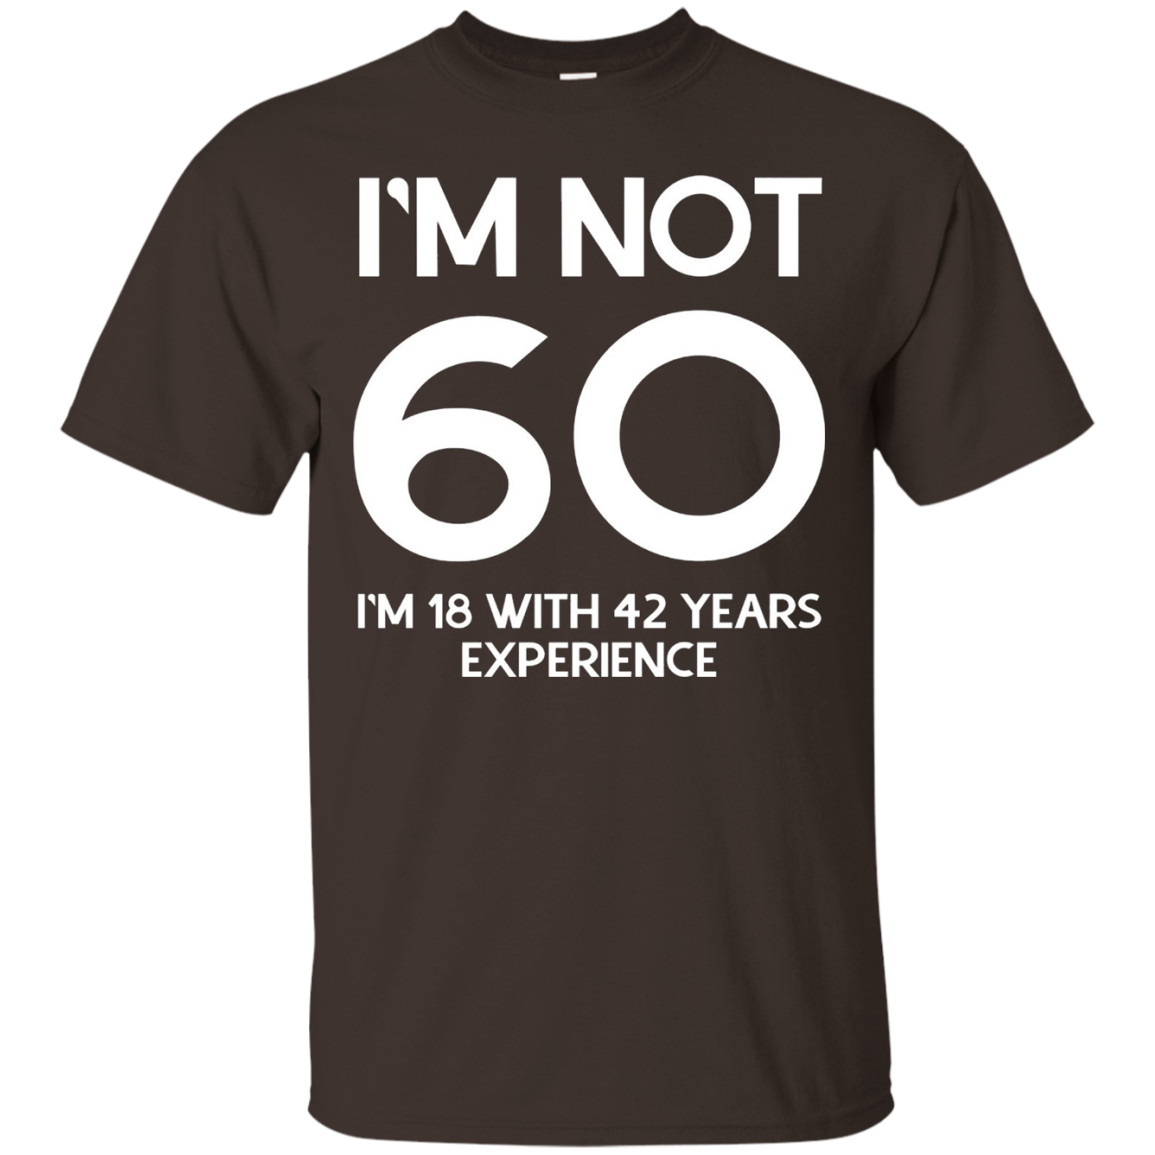 I'm not 60 i'm 18 with 42 years experience birthday shirt